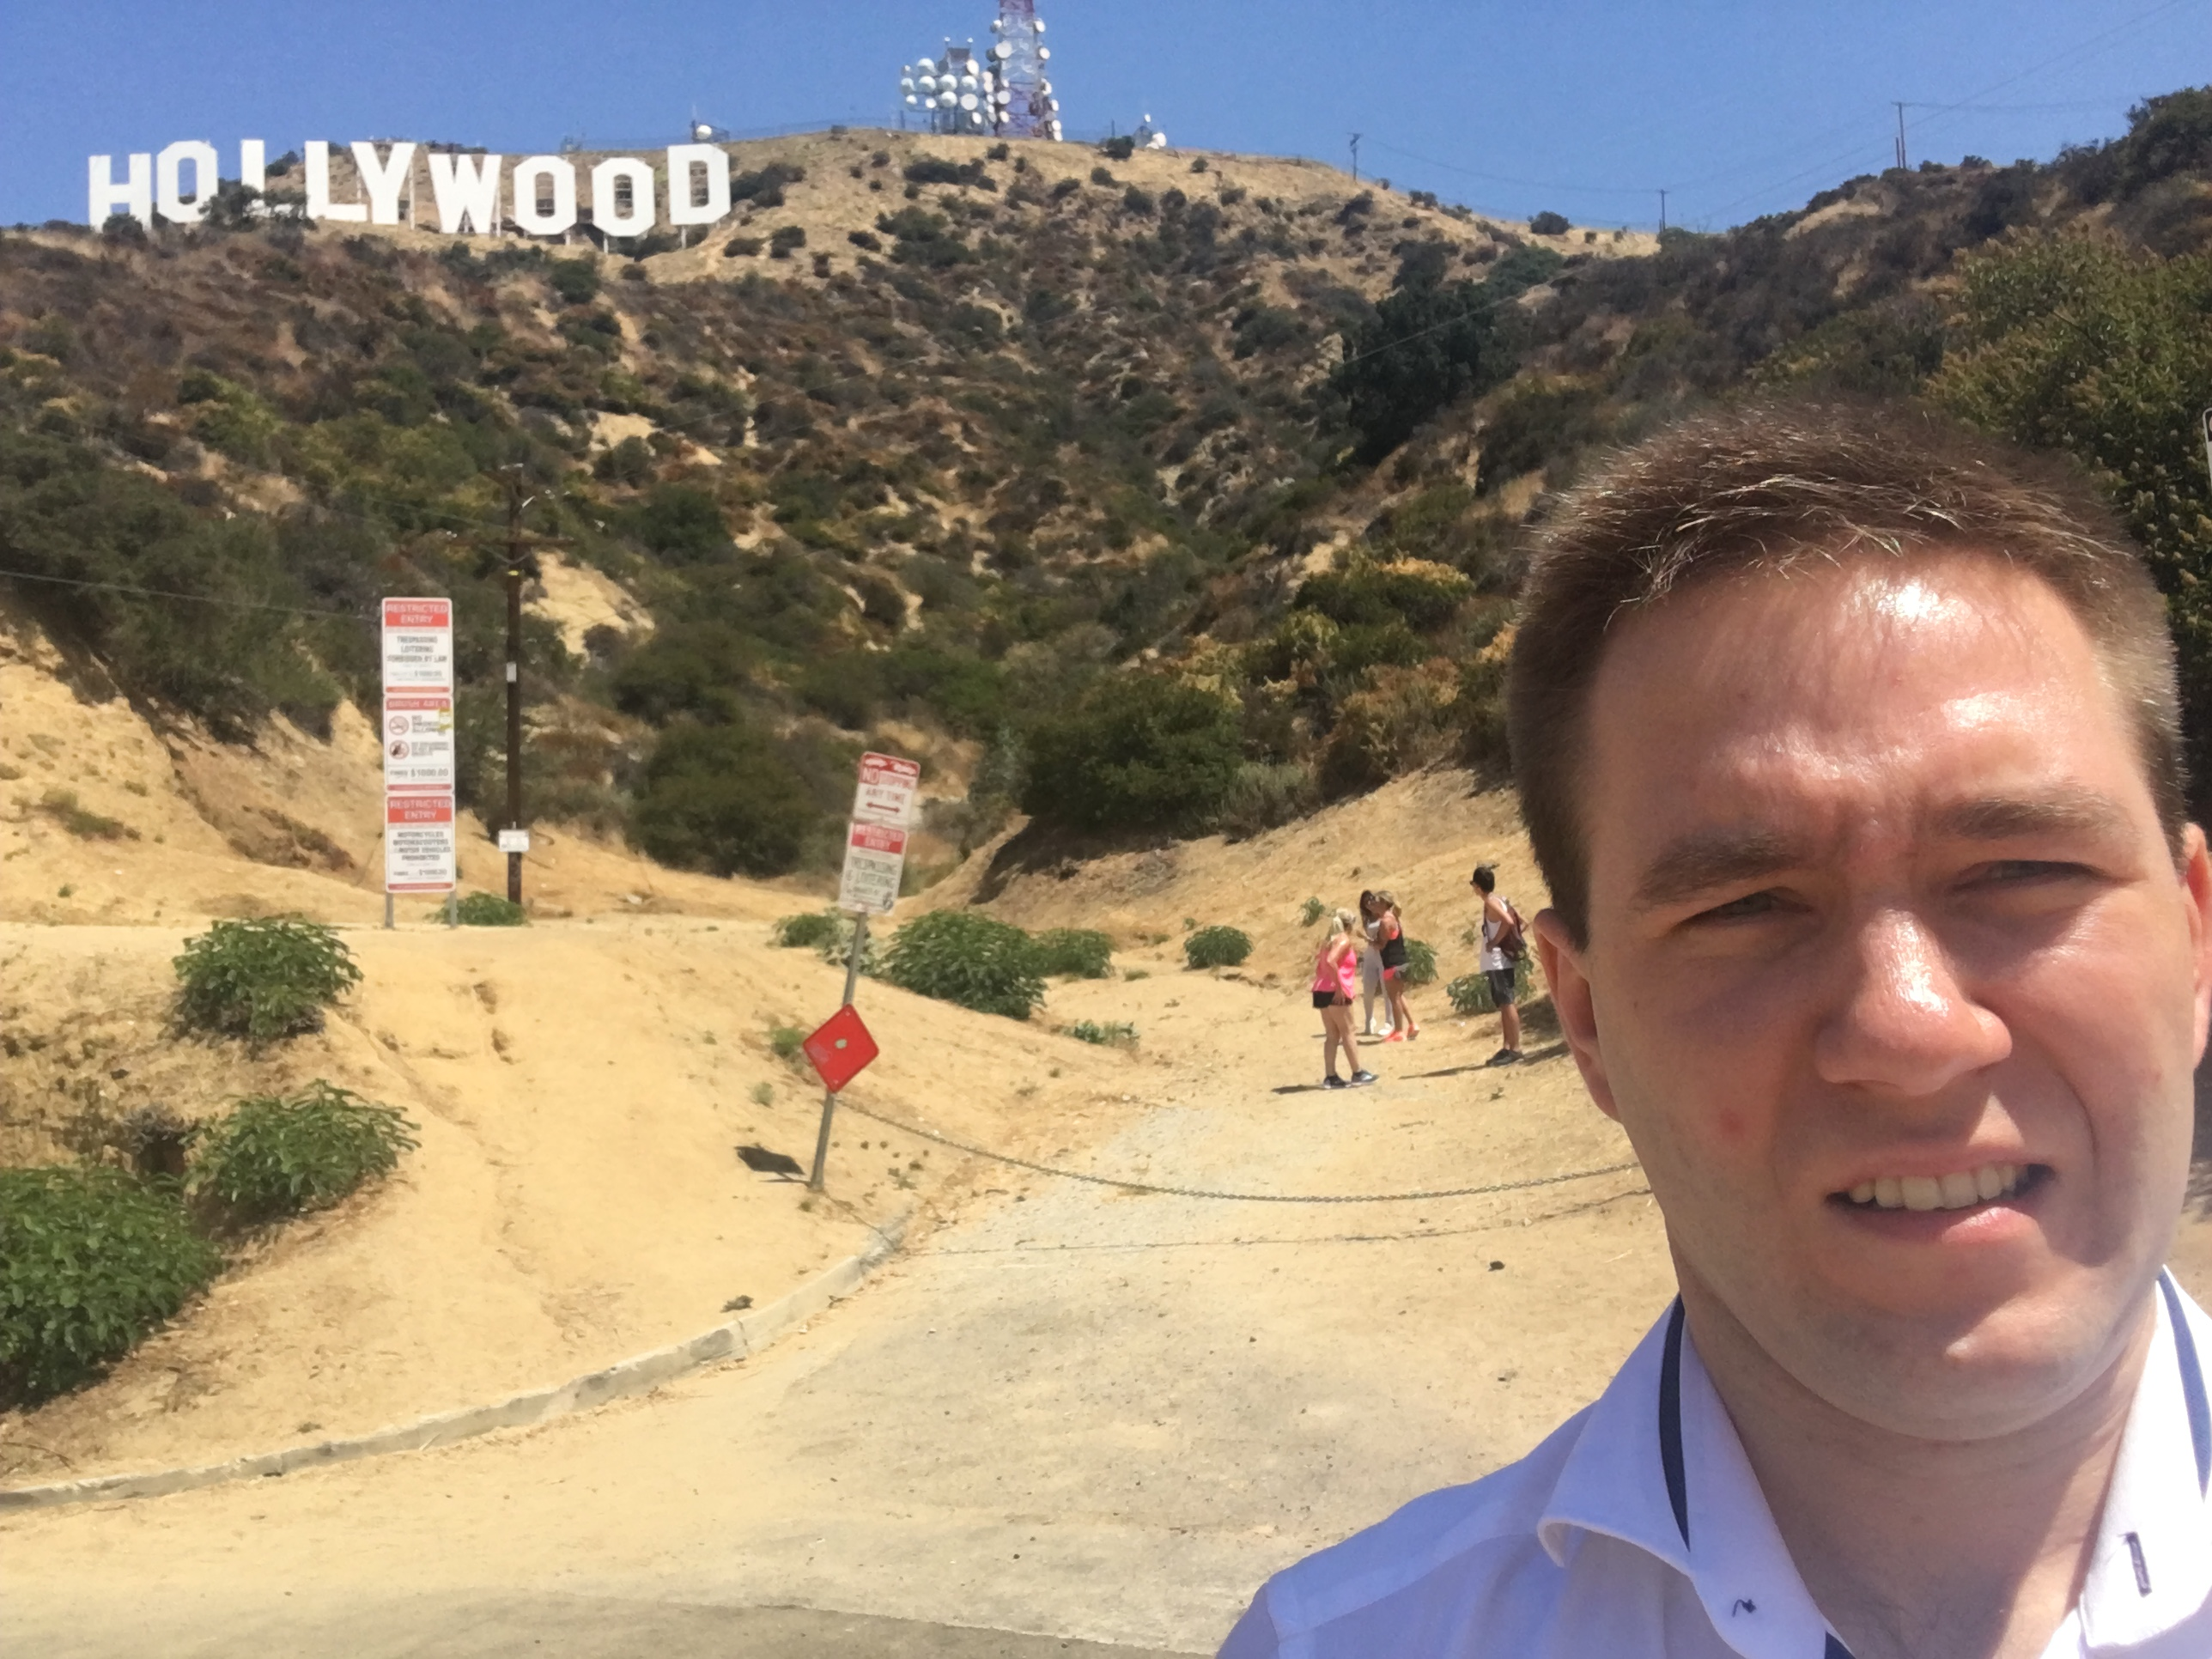 Hollywood Sign, pamiątkowe selfie